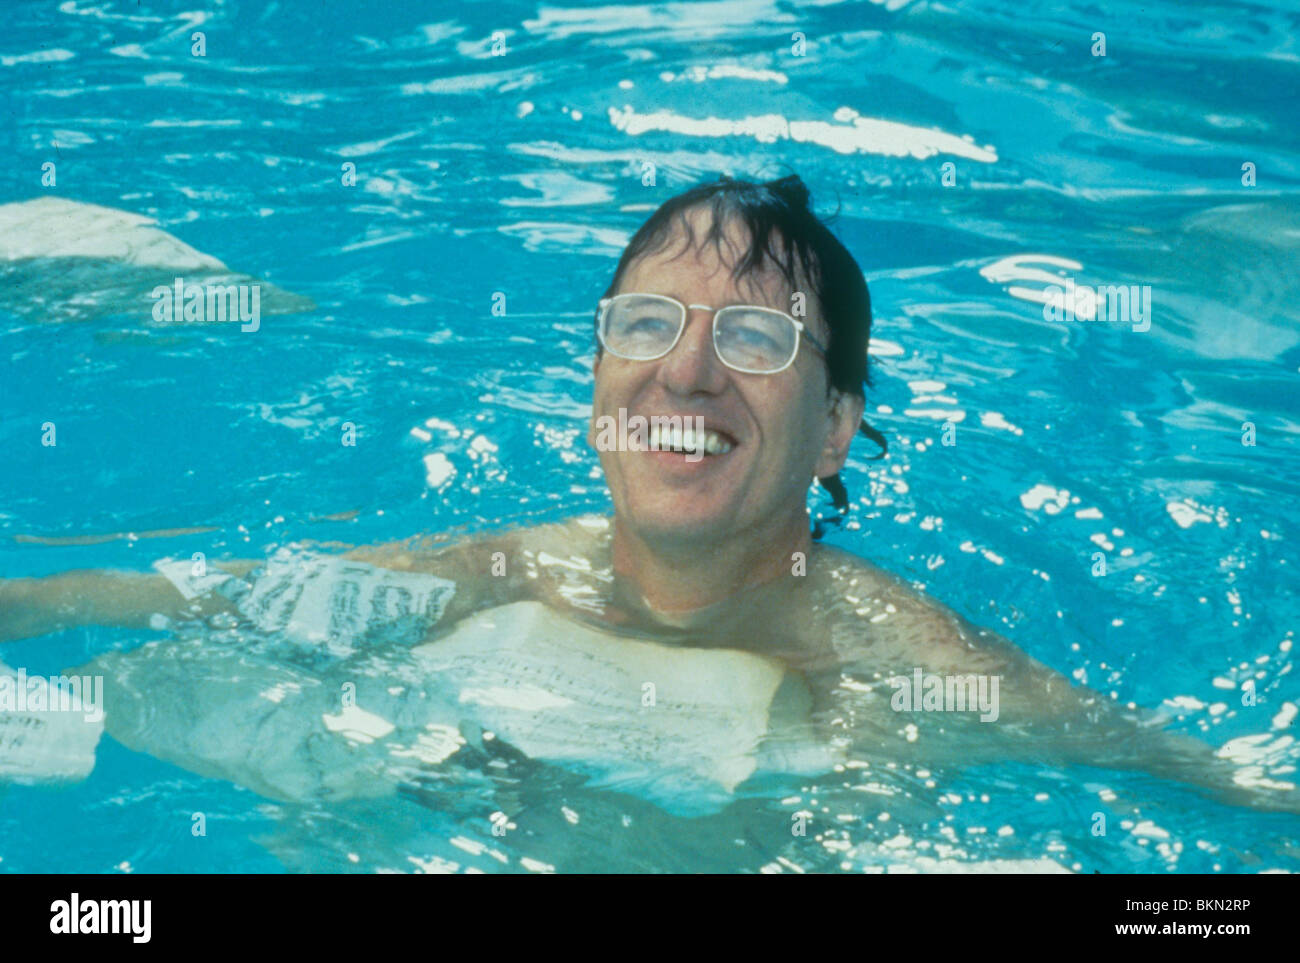 SHINE -1996 GEOFFREY RUSH - Stock Image